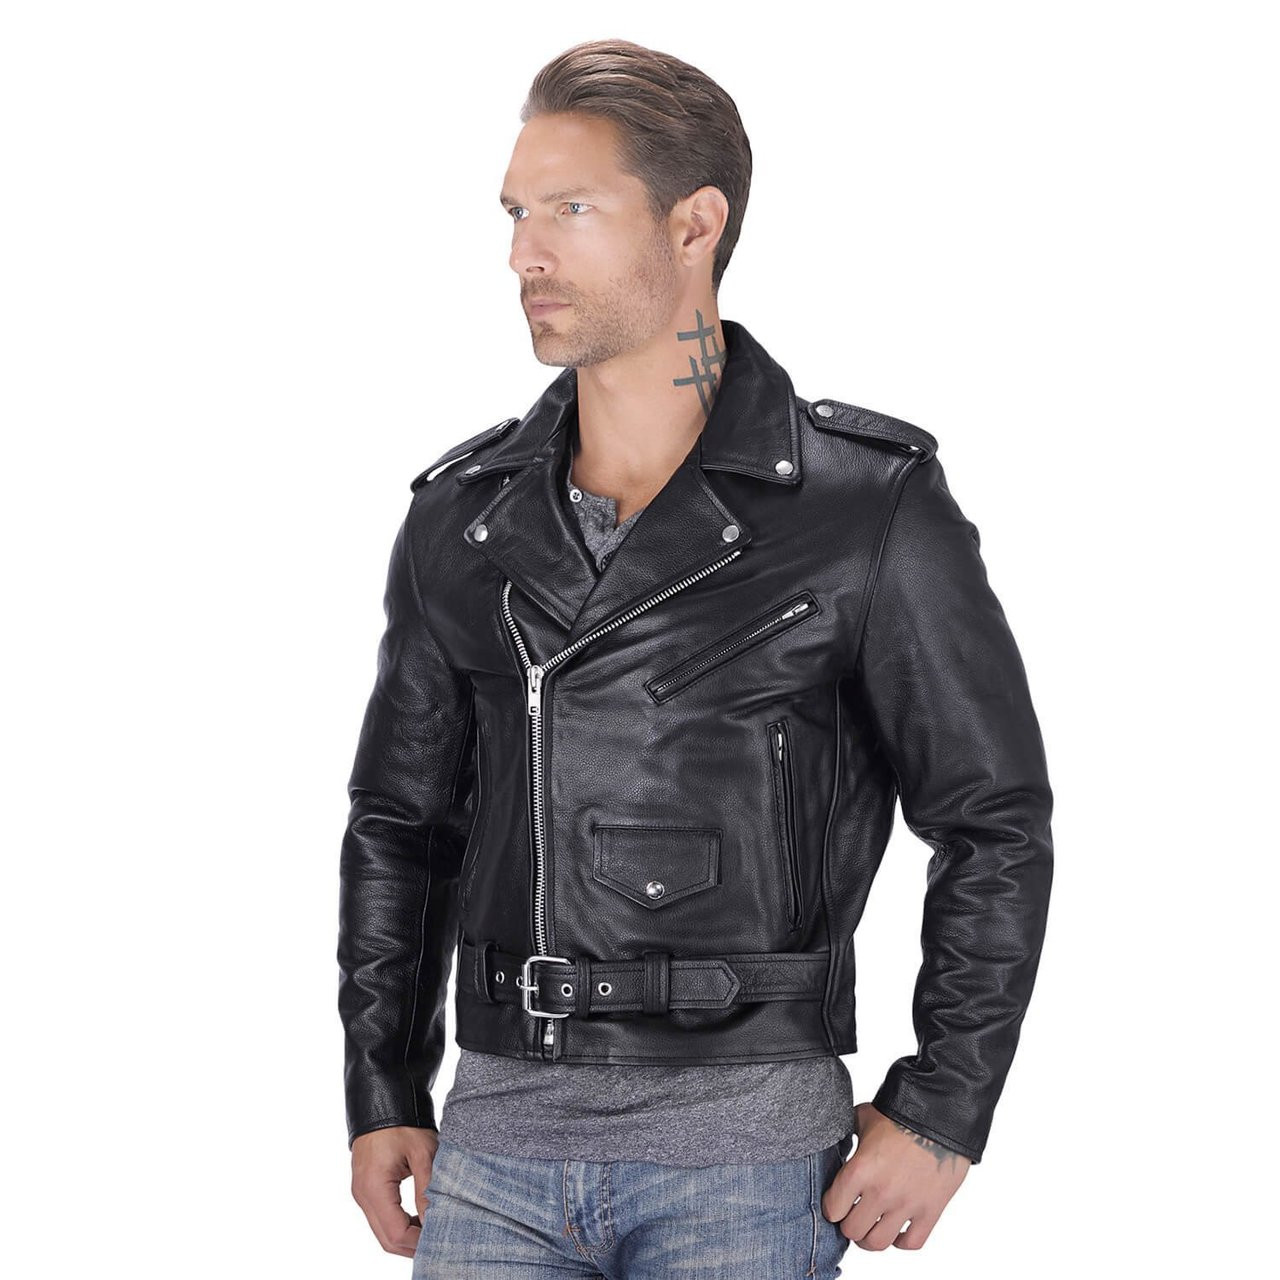 Nomad Usa Classic Leather Biker Jacket Motorcycle House